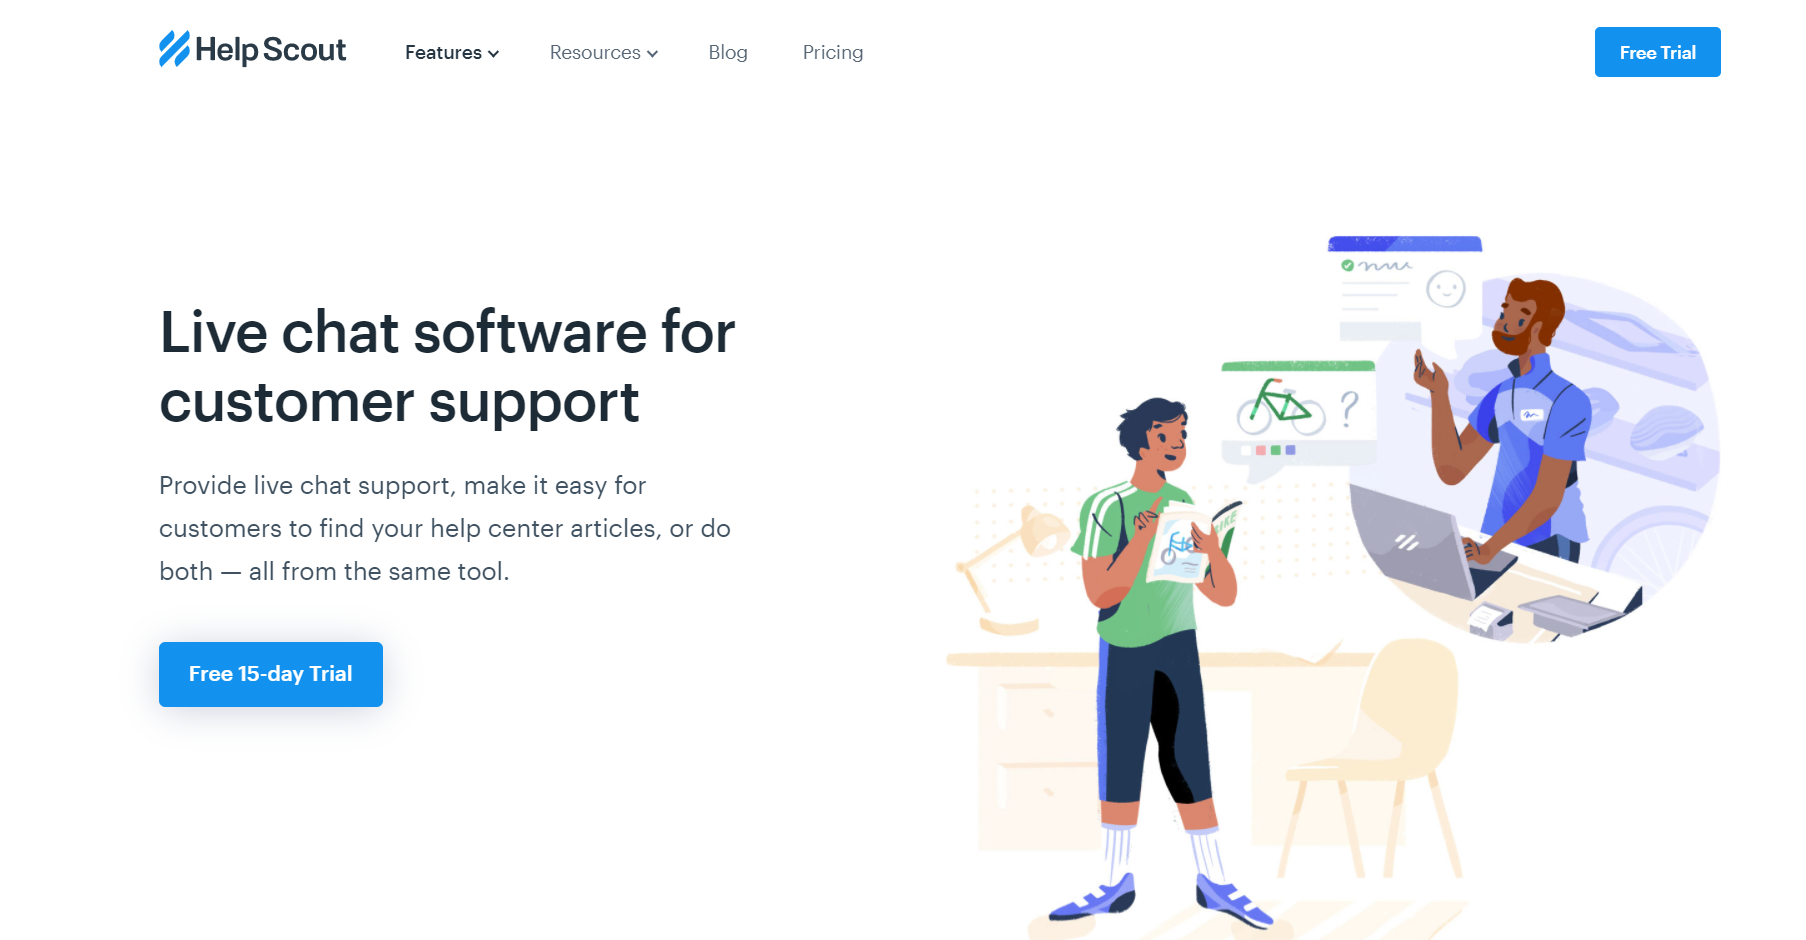 helpscout live chat